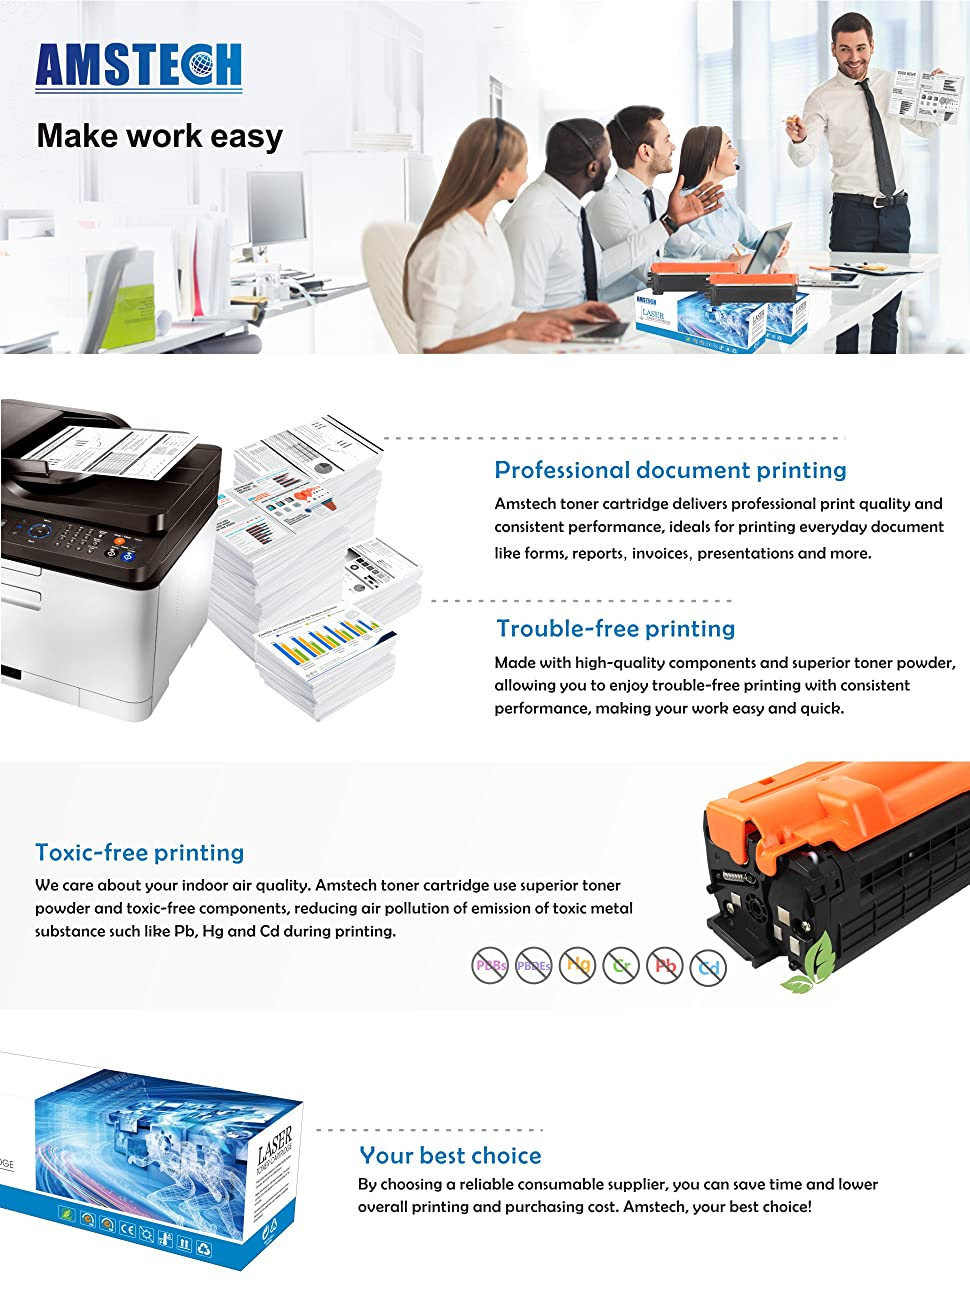 Ntta Org Pay Invoice Excel Amazoncom Amstech  Pages Compatible Black Toner Cartridge  Tax Invoice Statement Pdf with Deposit Receipts Excel  Compatible Printers Deposit Receipt Sample Word